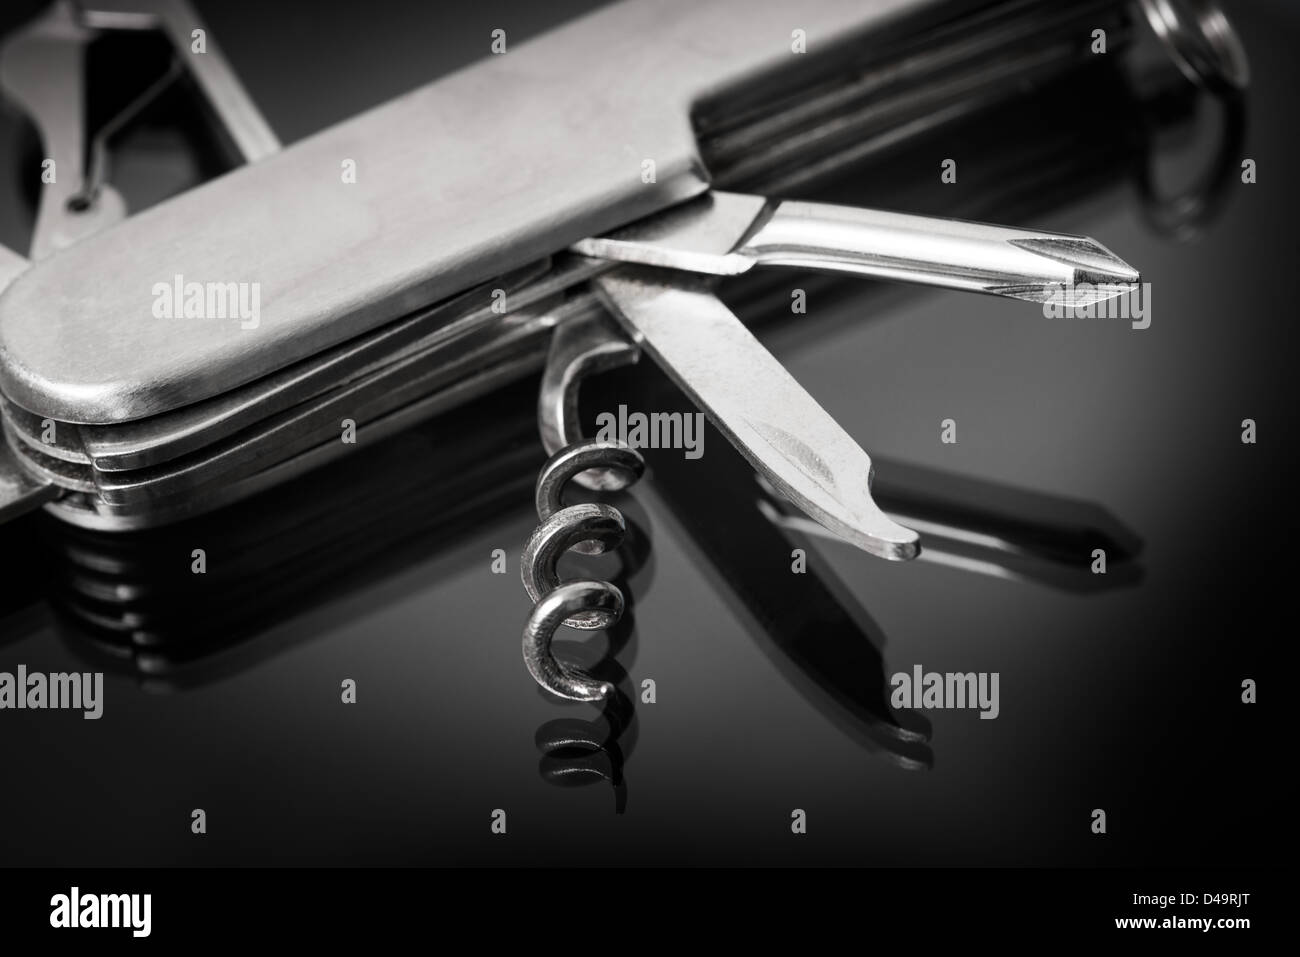 This is an image of a multi tool knife, scissors, screwdriver etc. - Stock Image